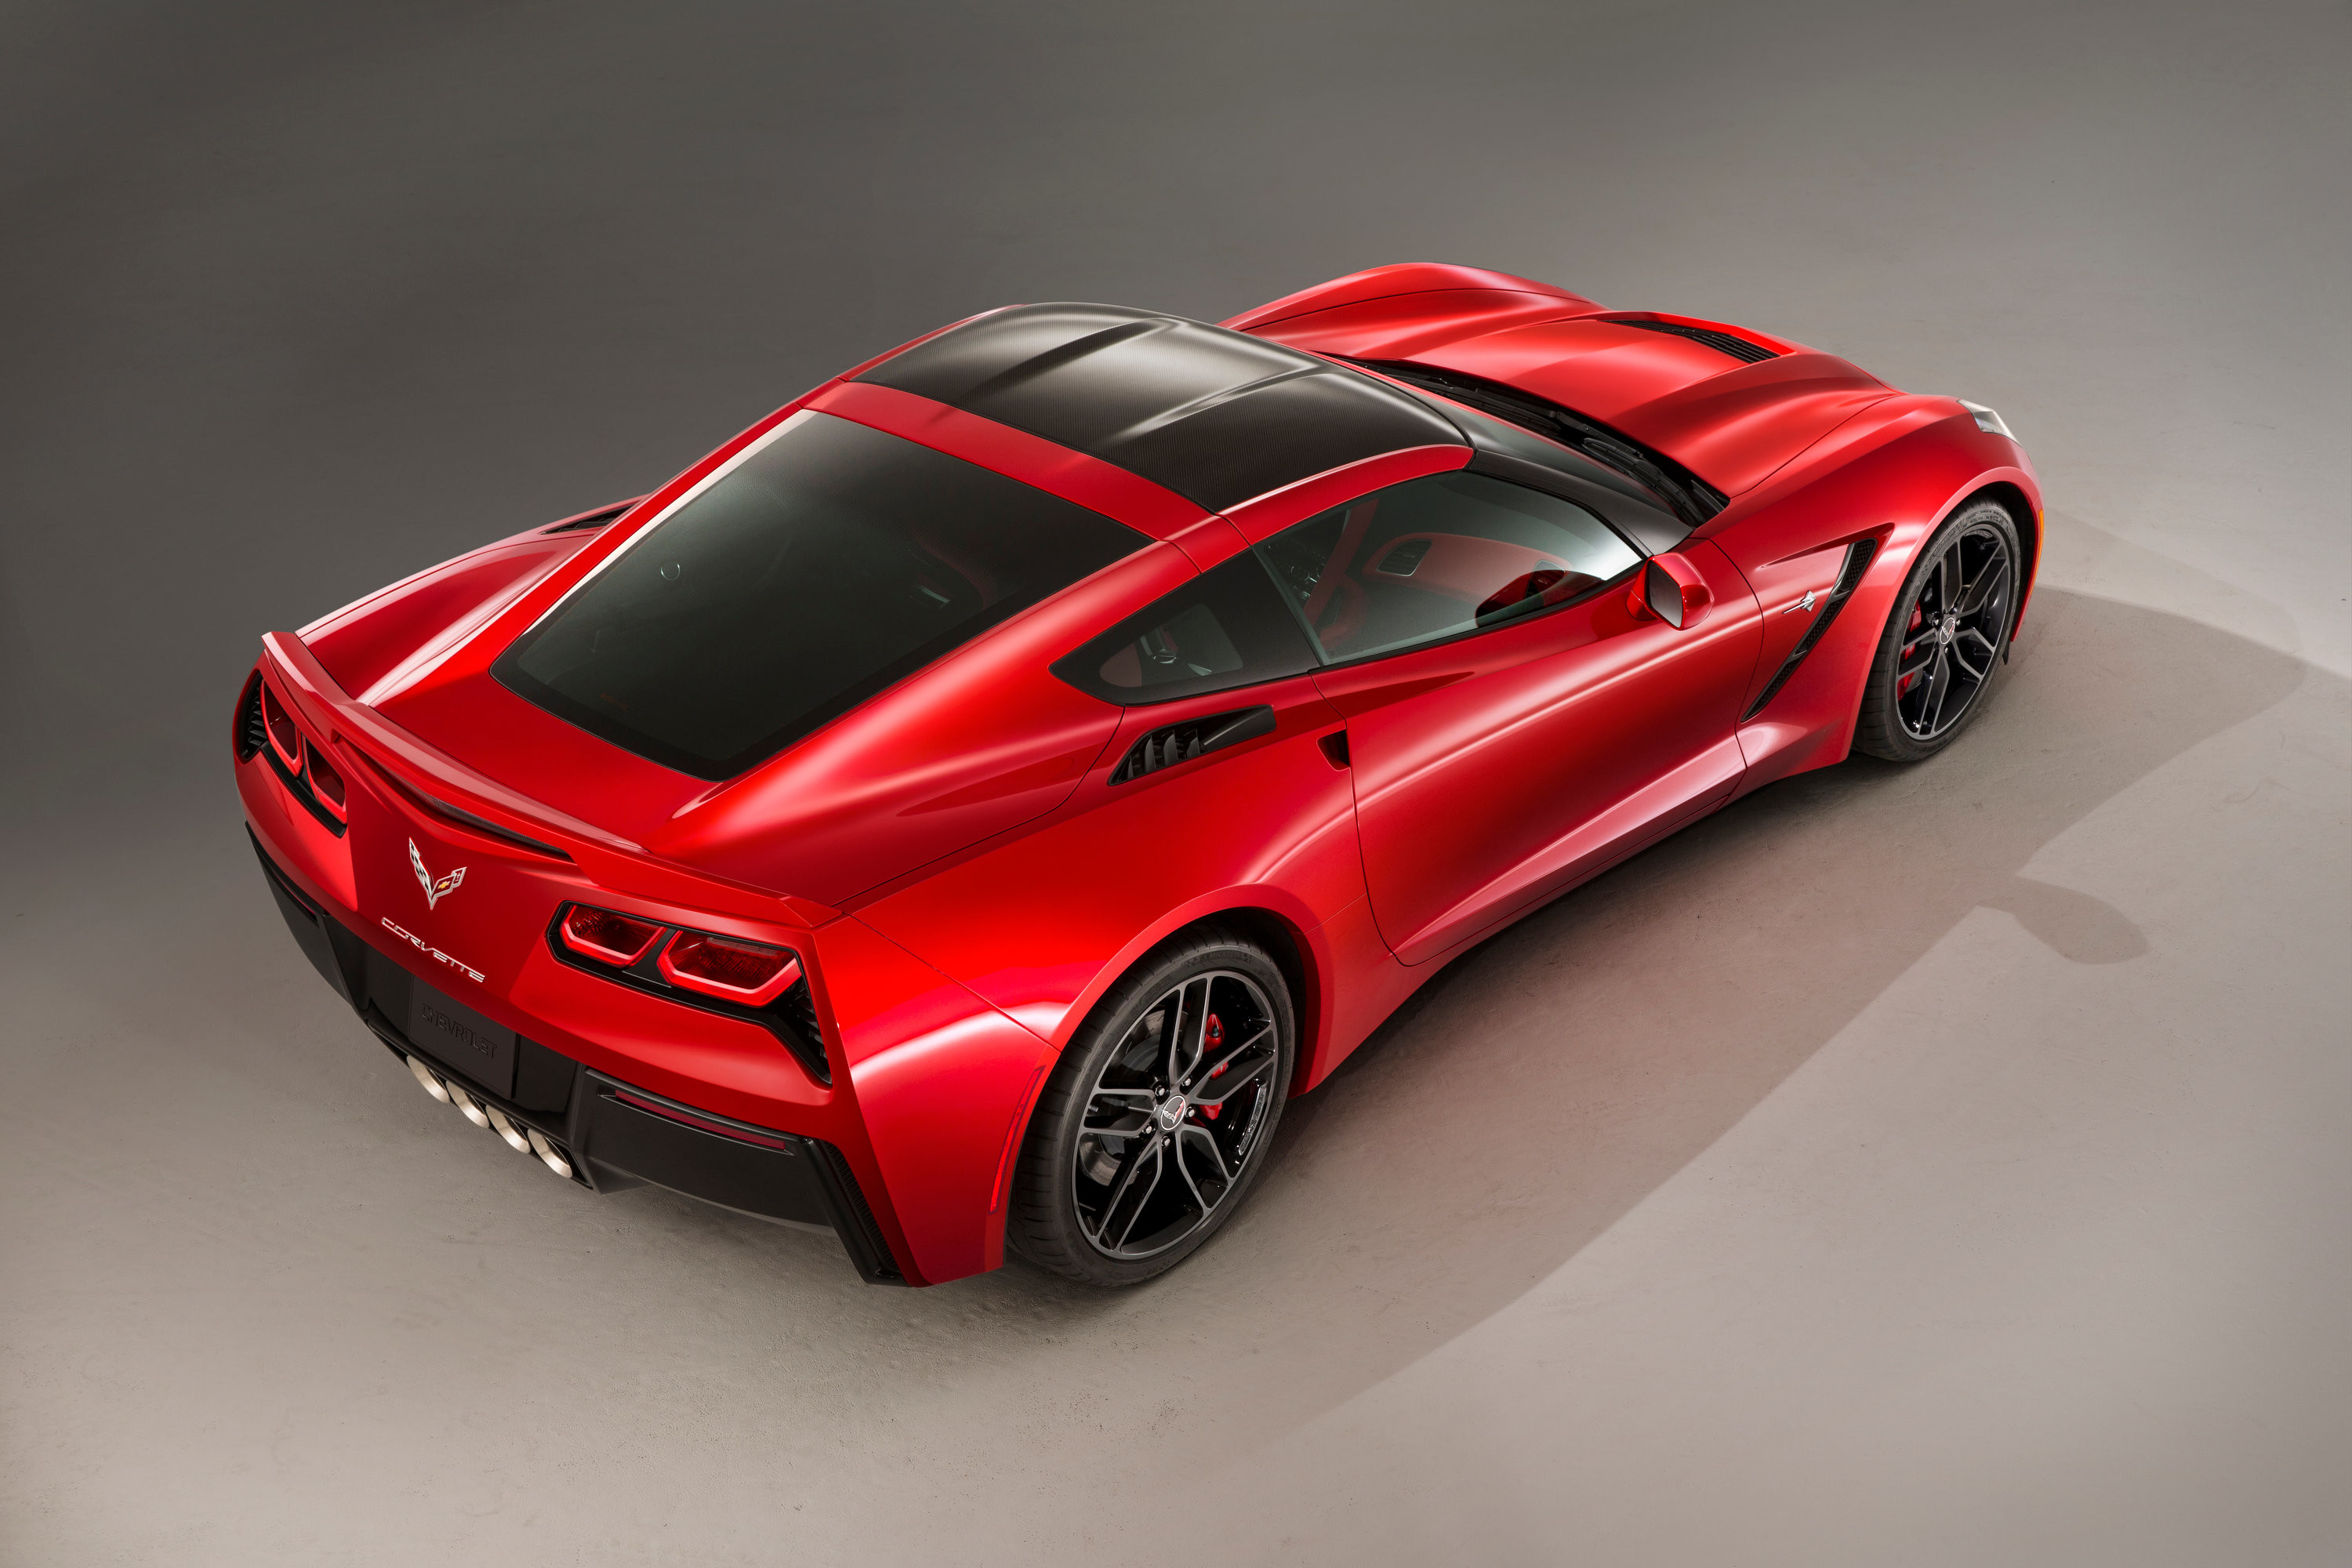 3000x2000 Daily Wallpaper: 2014 Chevrolet Corvette C7 Stingray | I Like To Waste My  Time